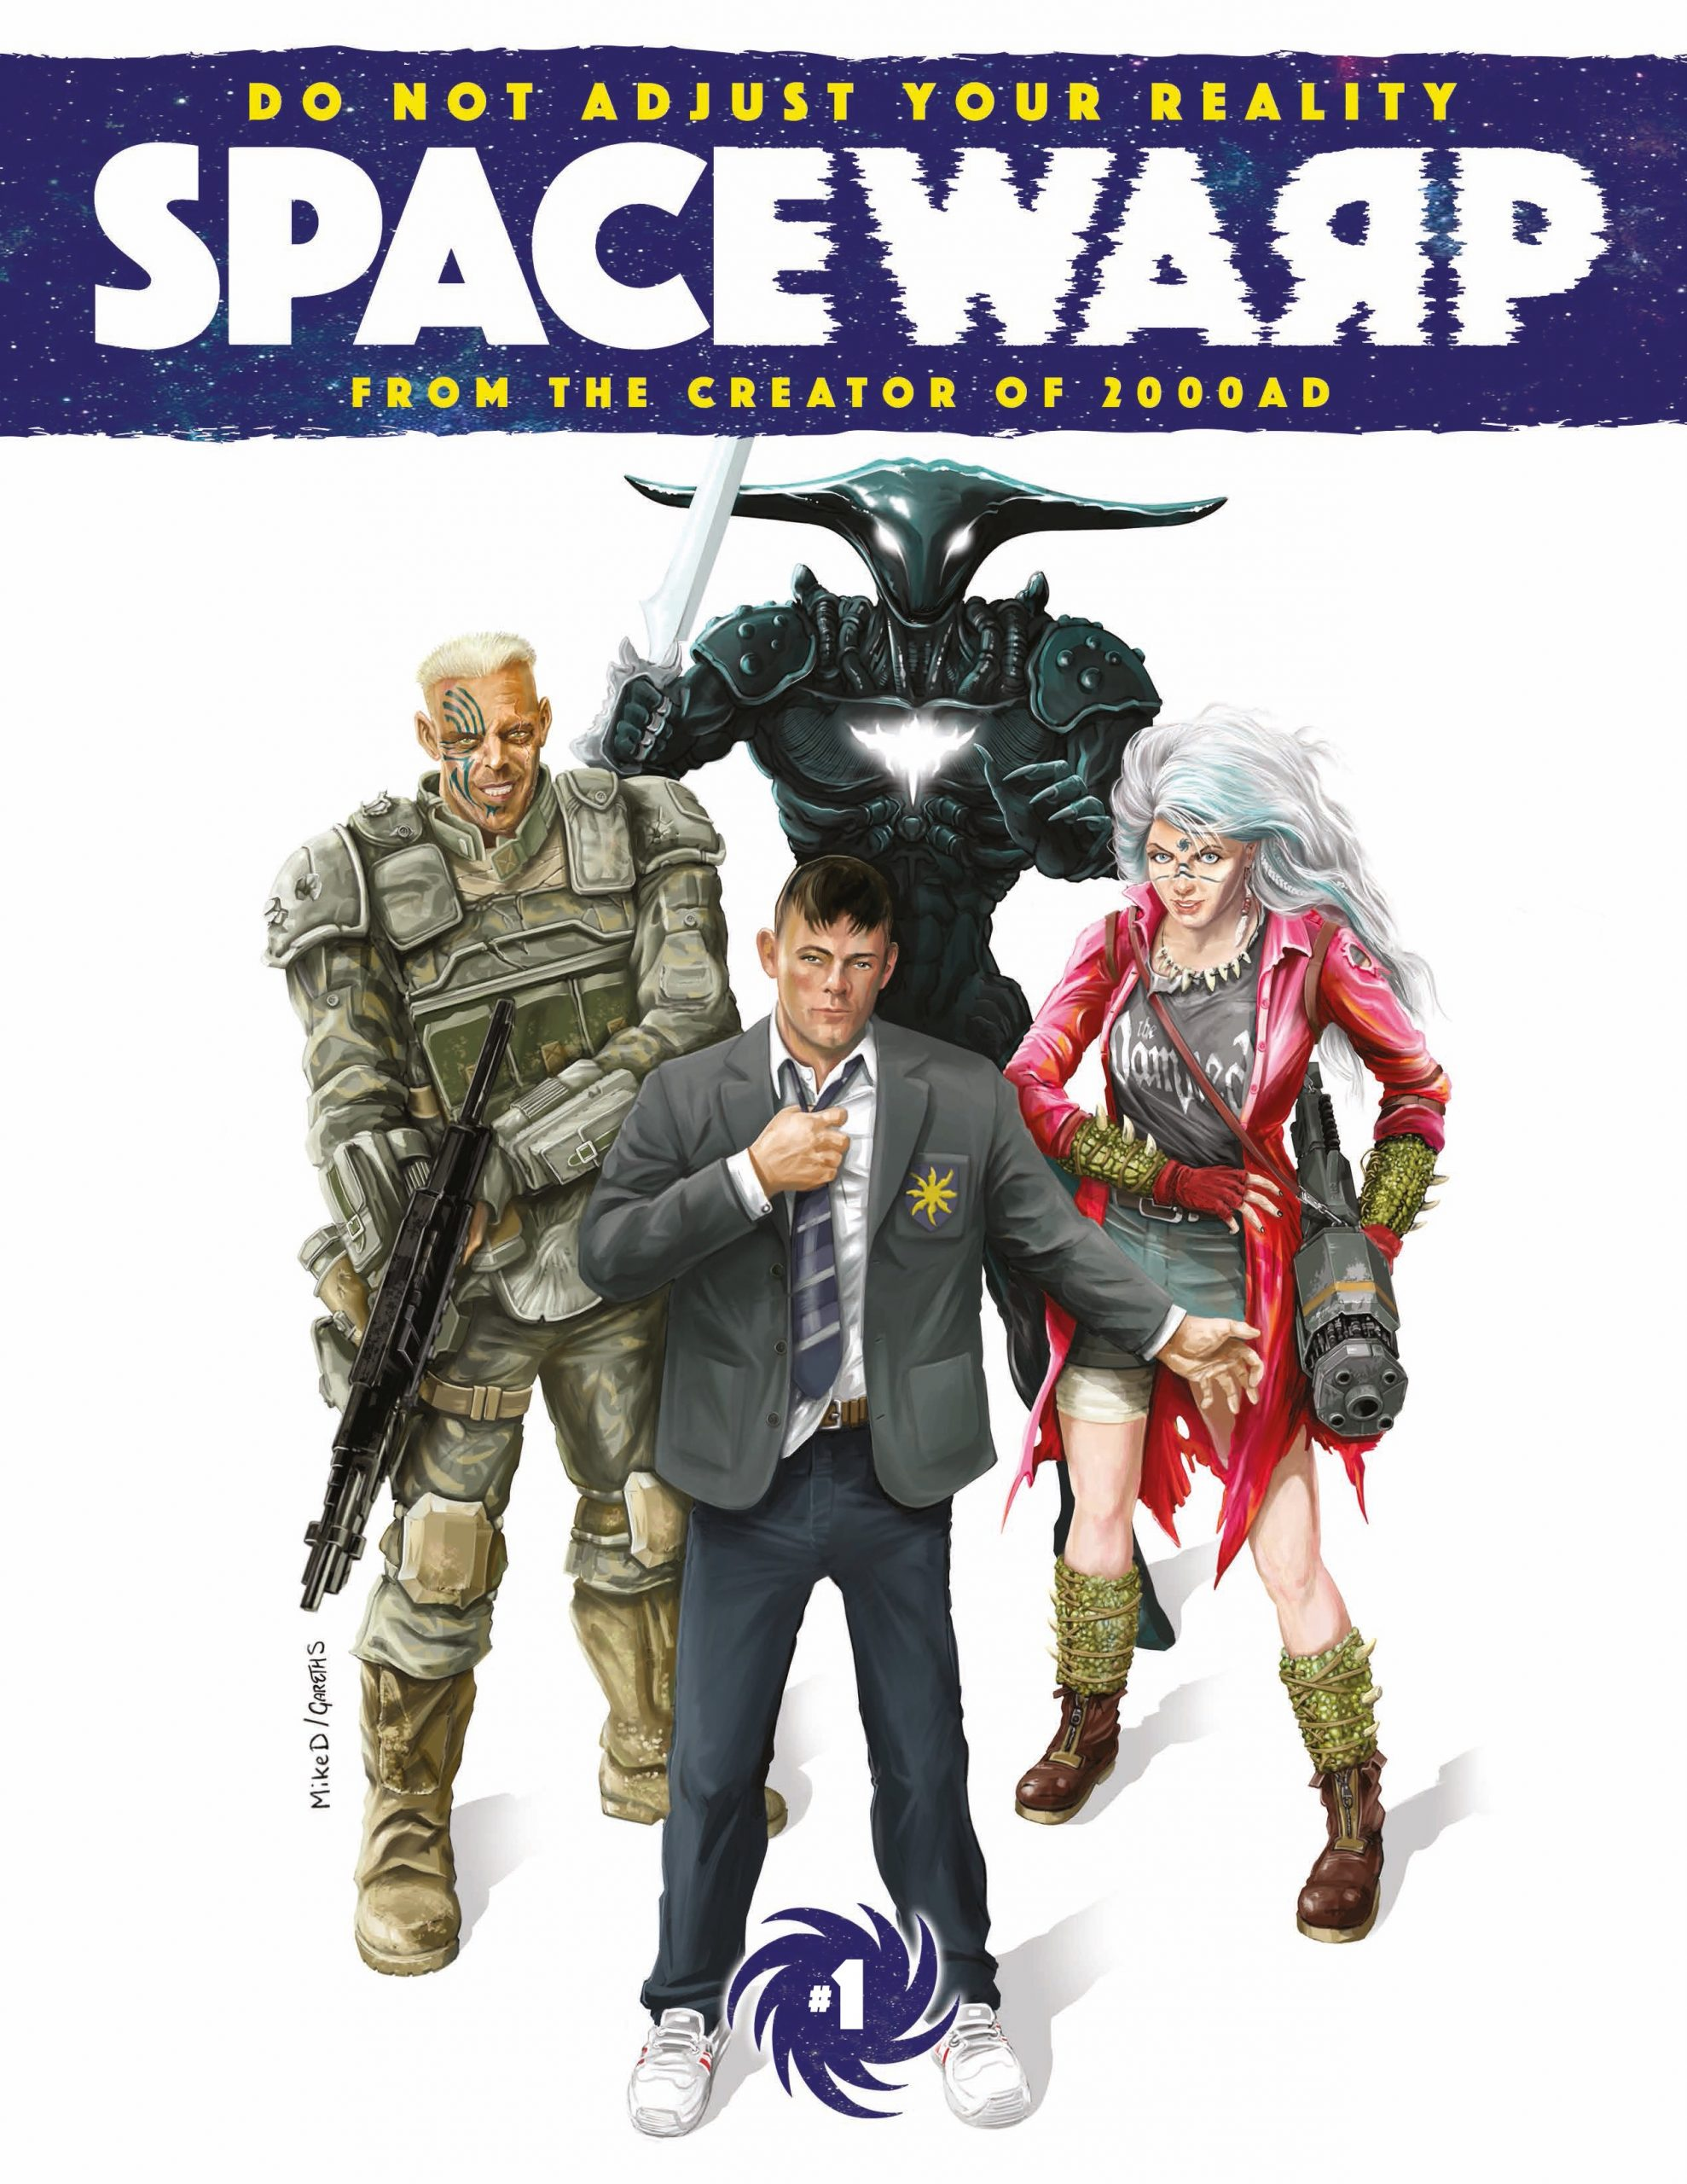 Spacewarp cover by Mike Donaldson and Gareth Sleightholme